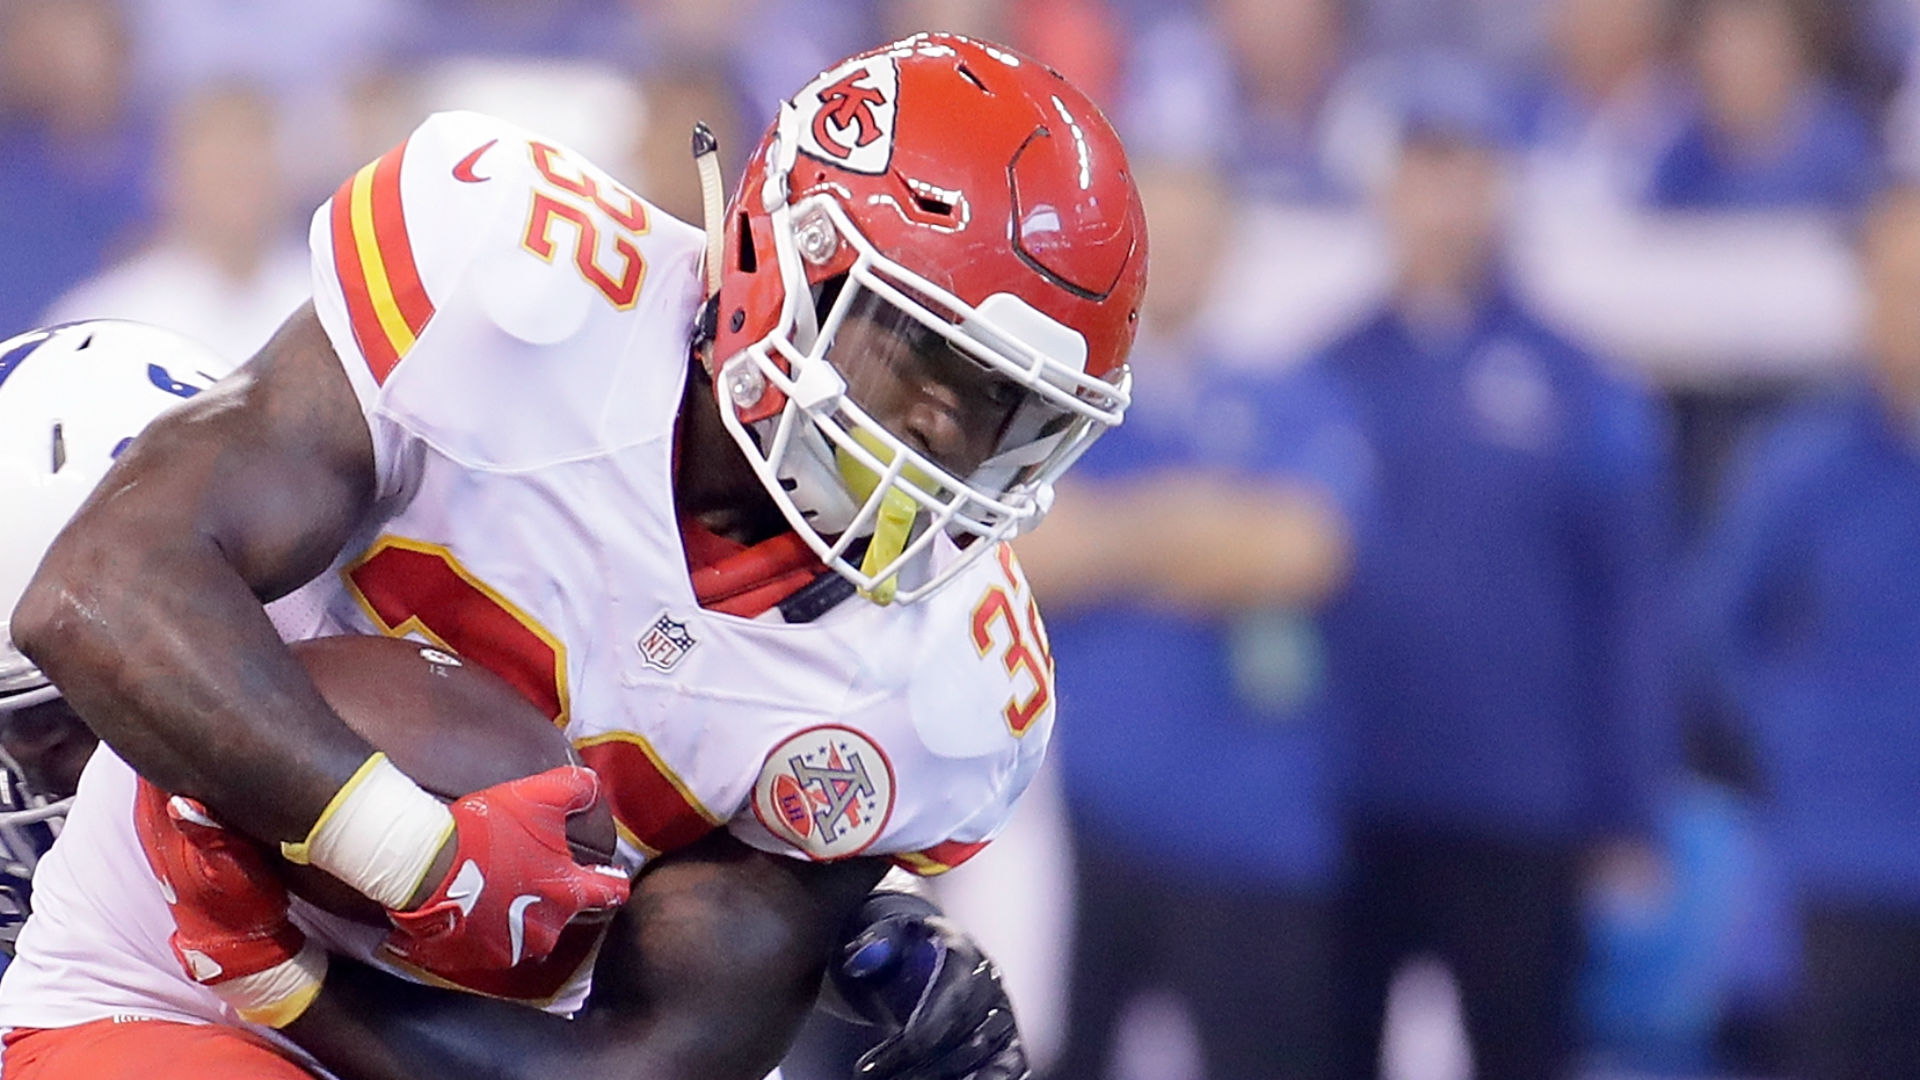 Chiefs Running Back has Torn PCL, Likely Will Miss Entire Season